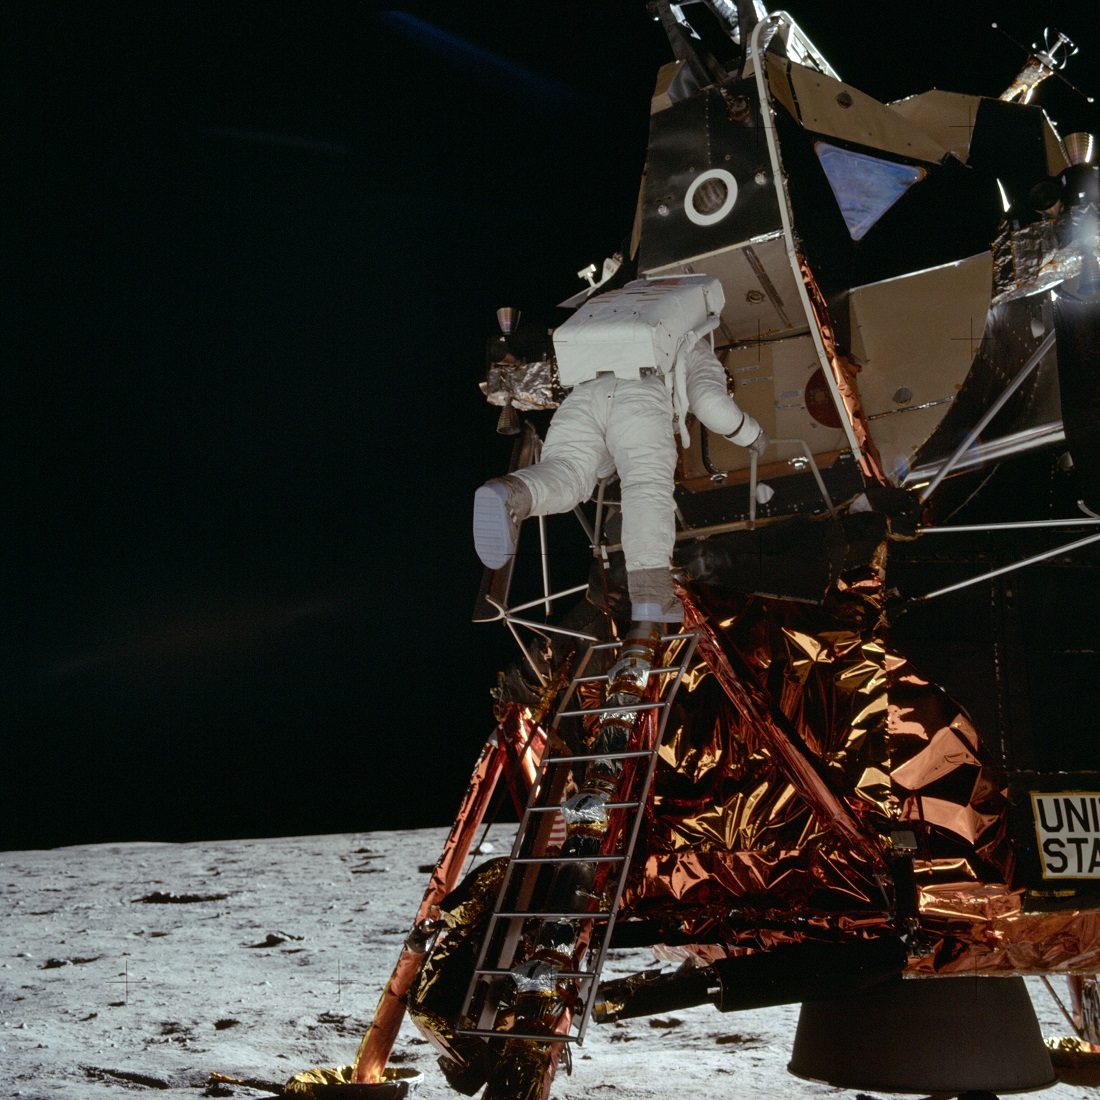 Aldrin descends lunar module NASA